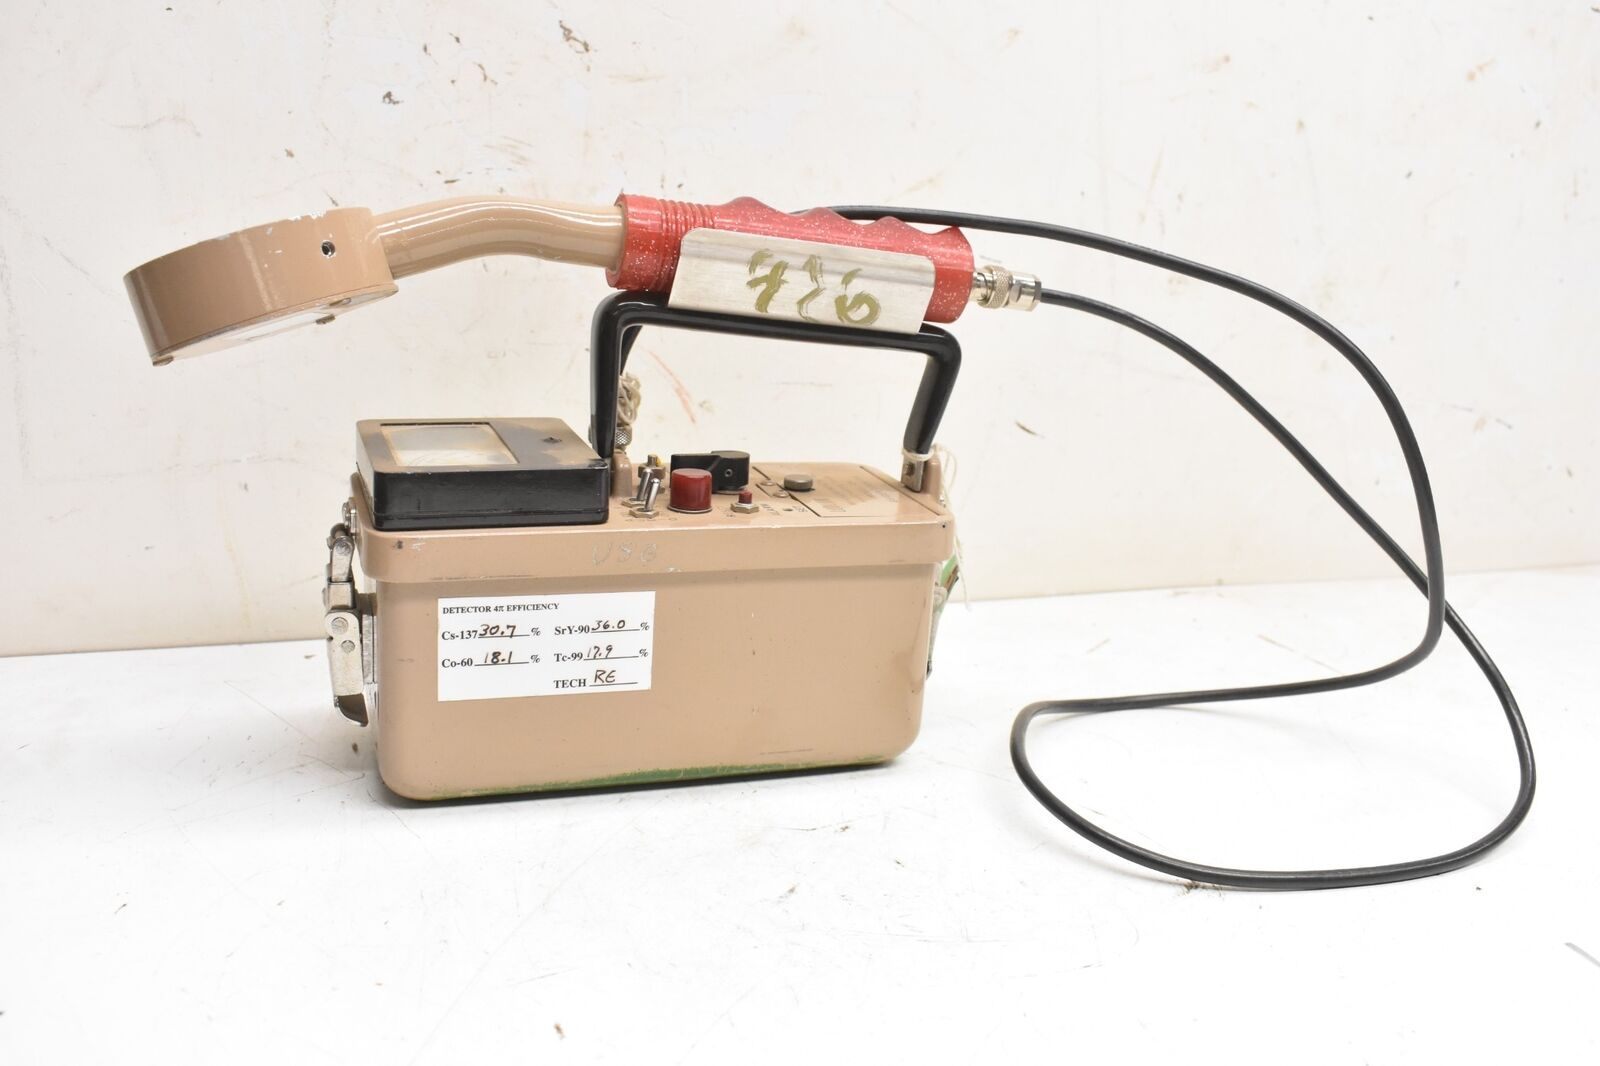 s l1600 - Ludlum Model 2A Geiger Counter